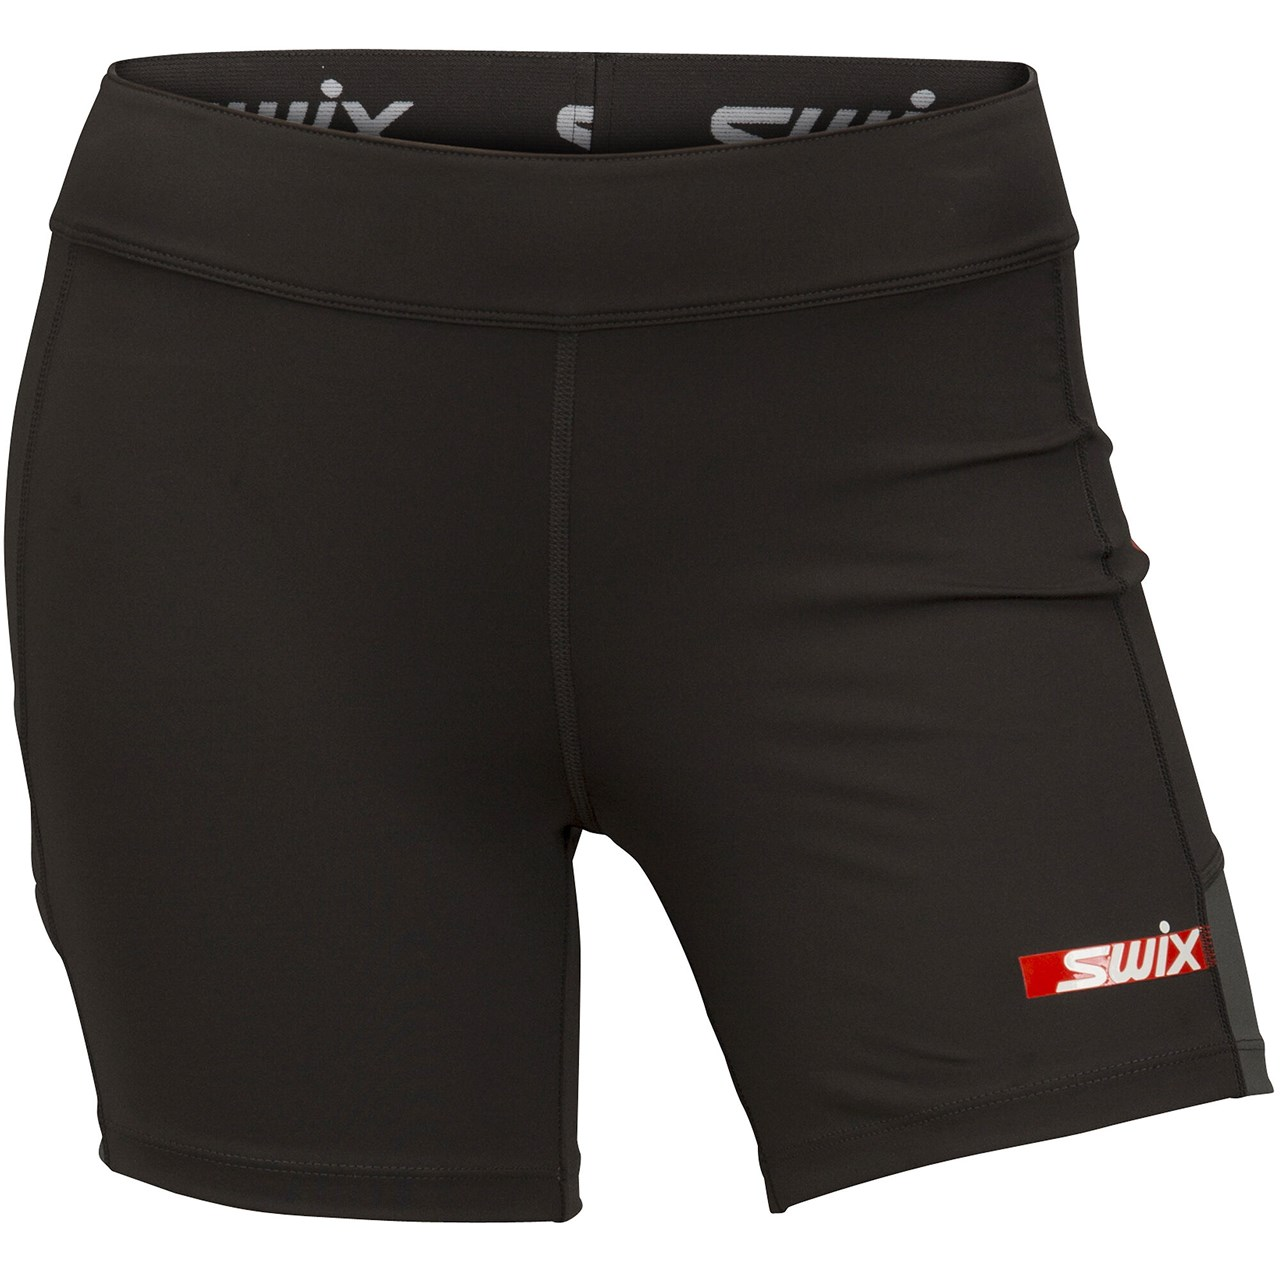 Swix  Carbon short tights W